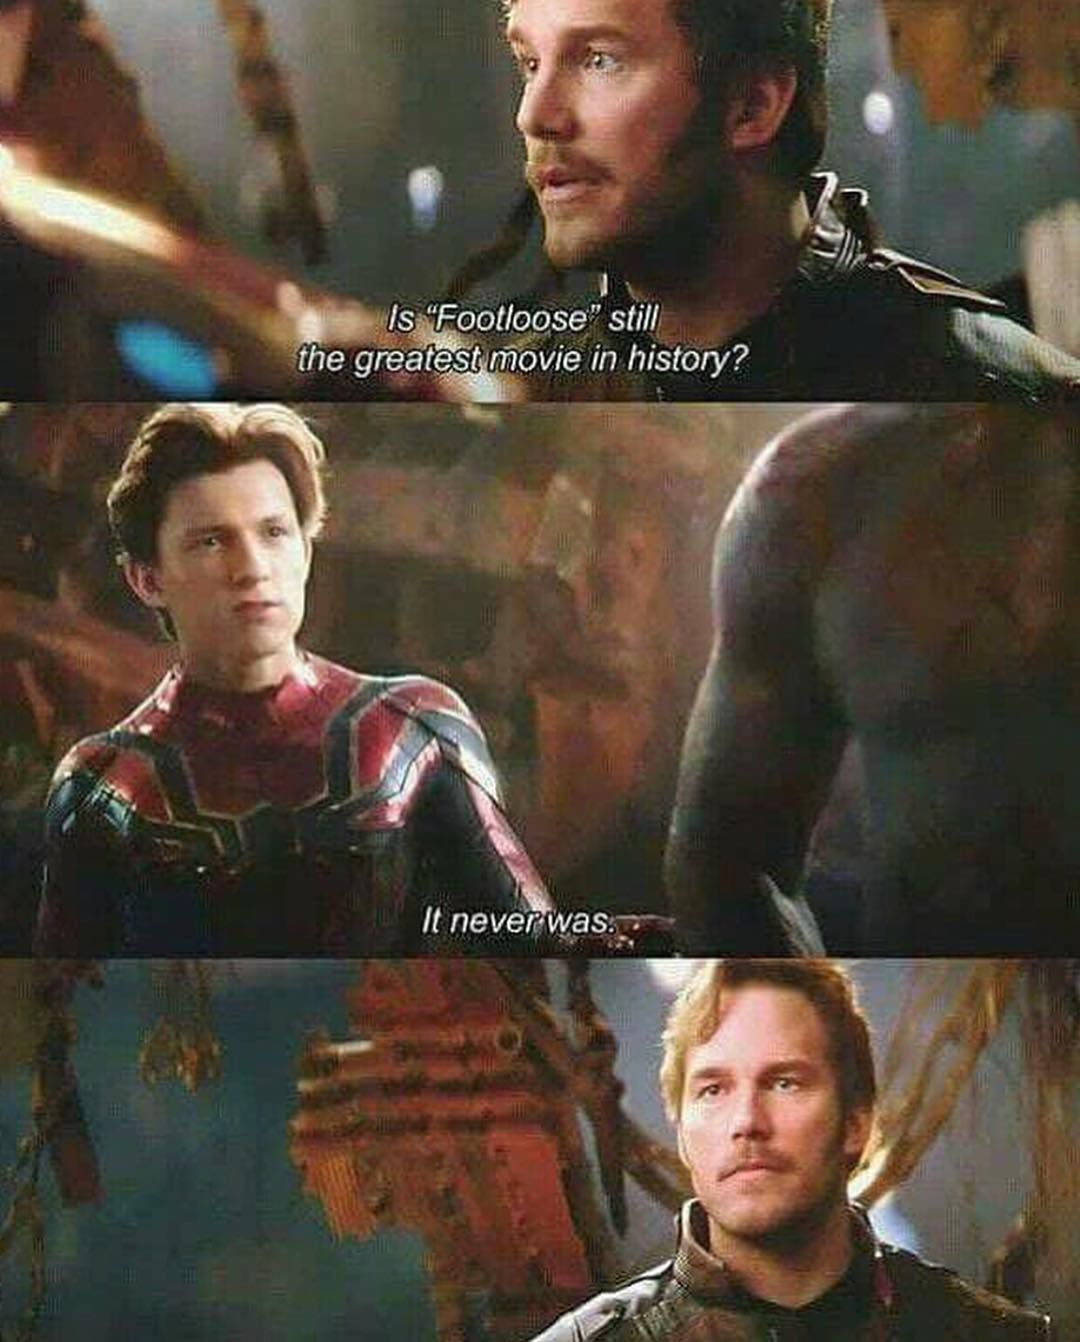 One of the funniest scenes Star Lords face #marvel